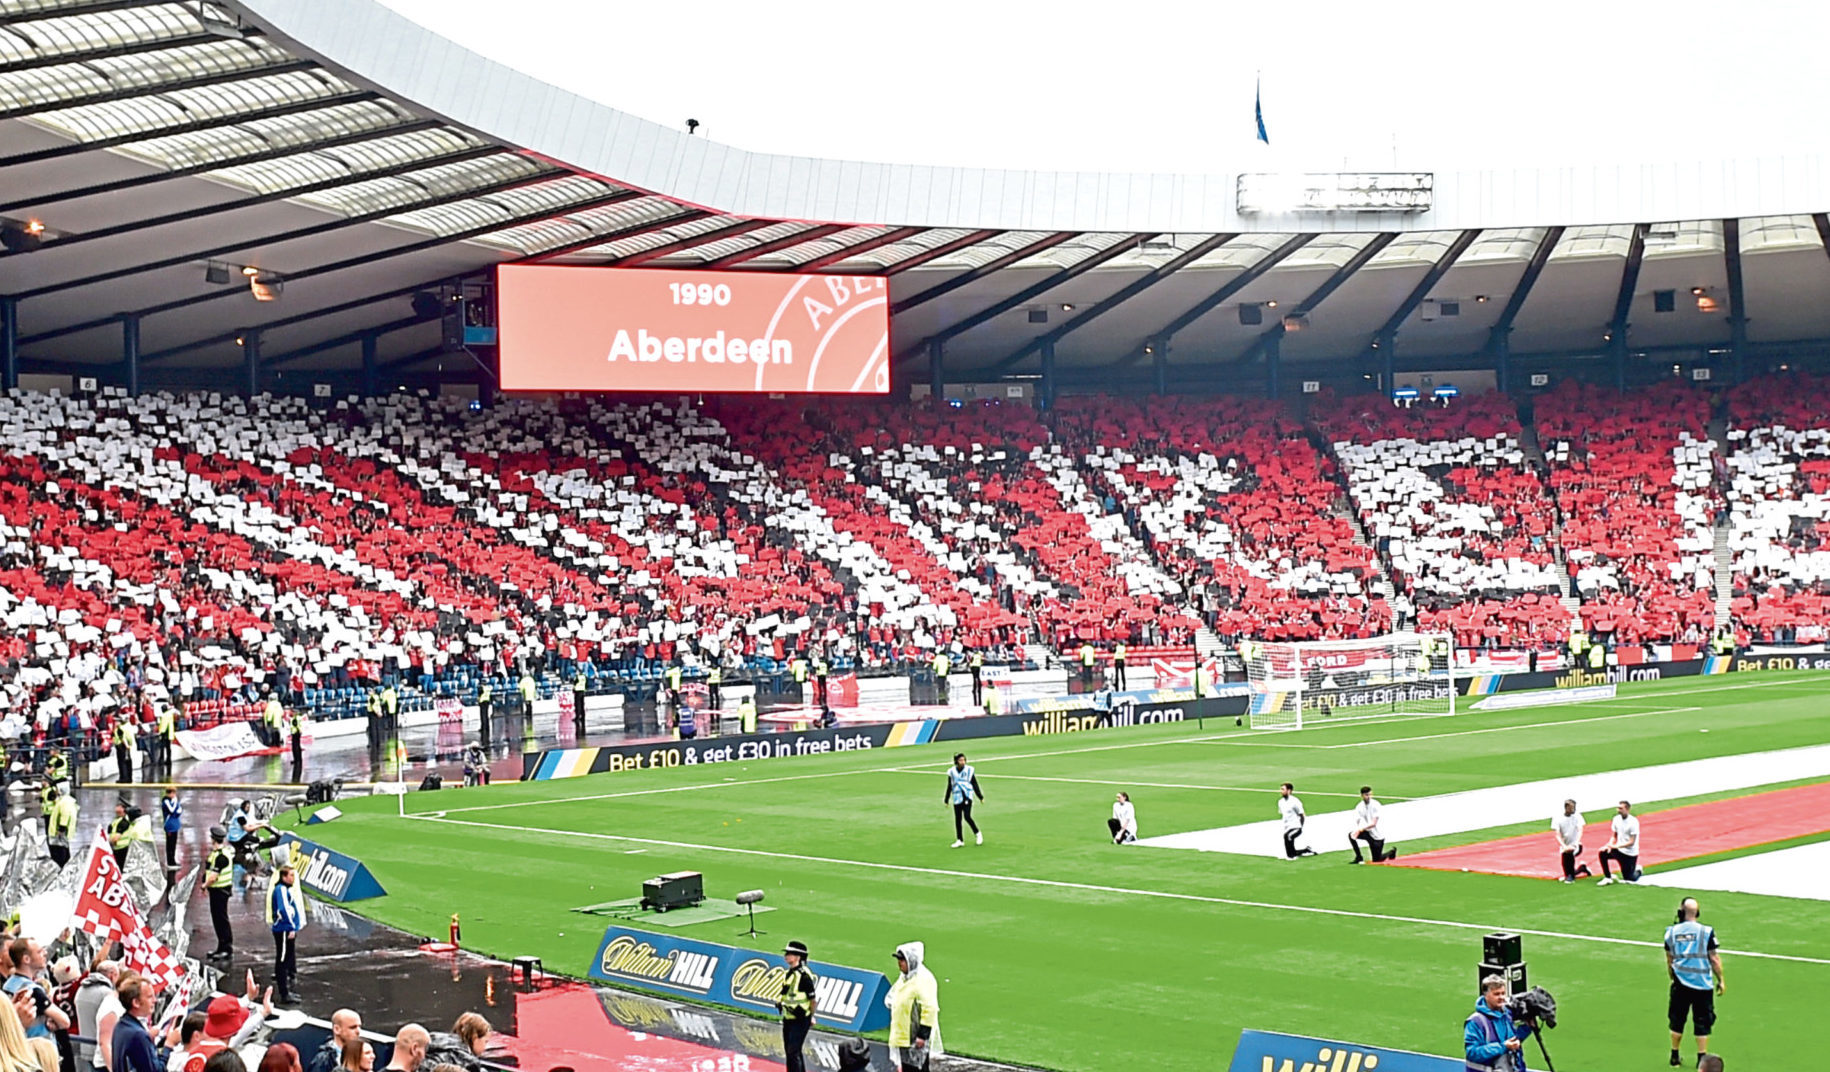 Aberdeen fans at Hampden for the 2017 Scottish Cup final.